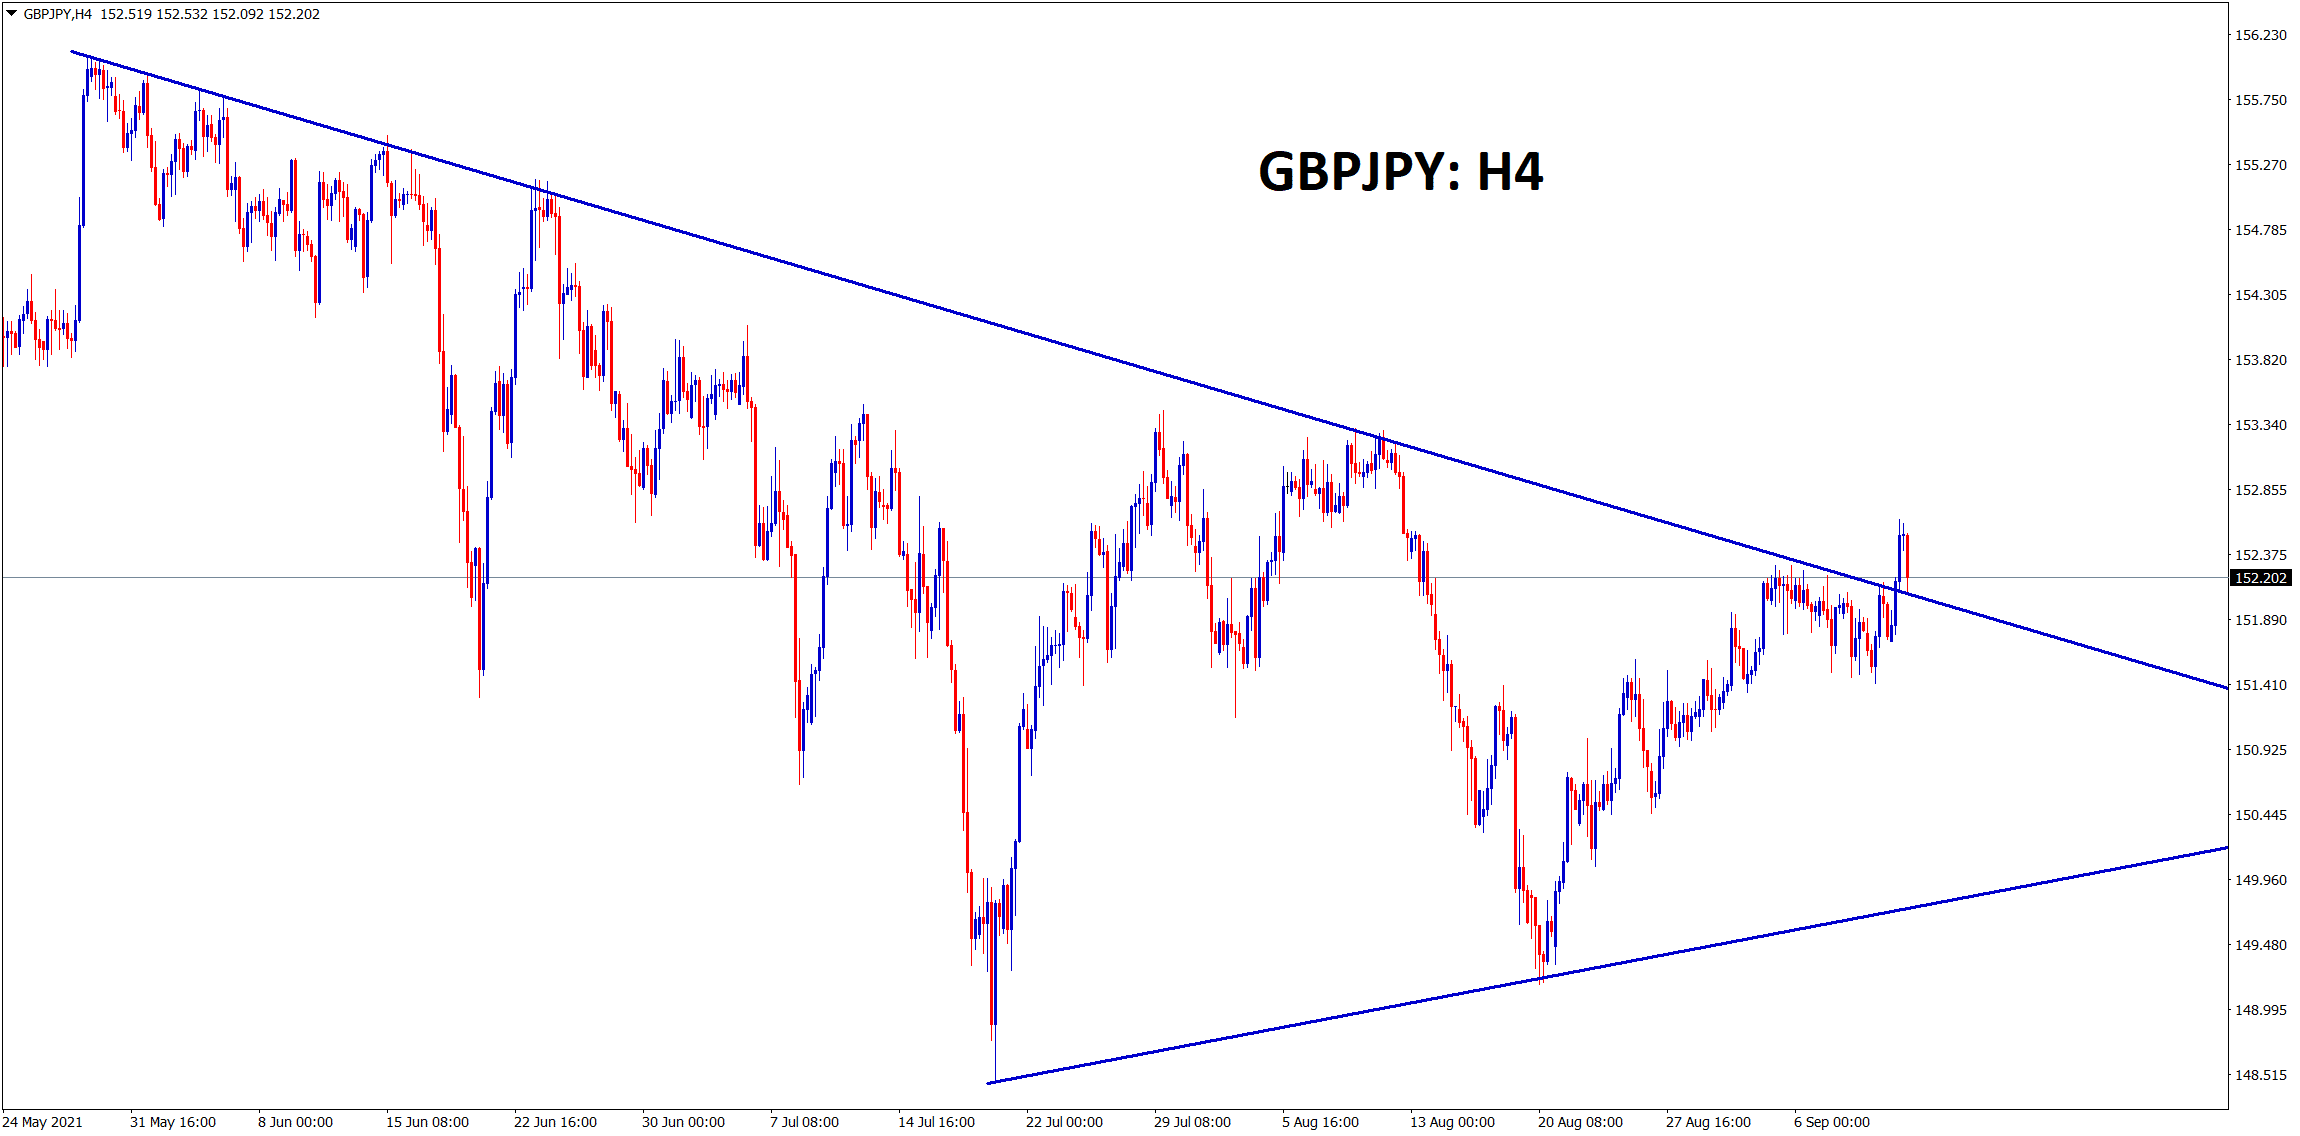 GBPJPY has broken the top lower high of the downtrend line today